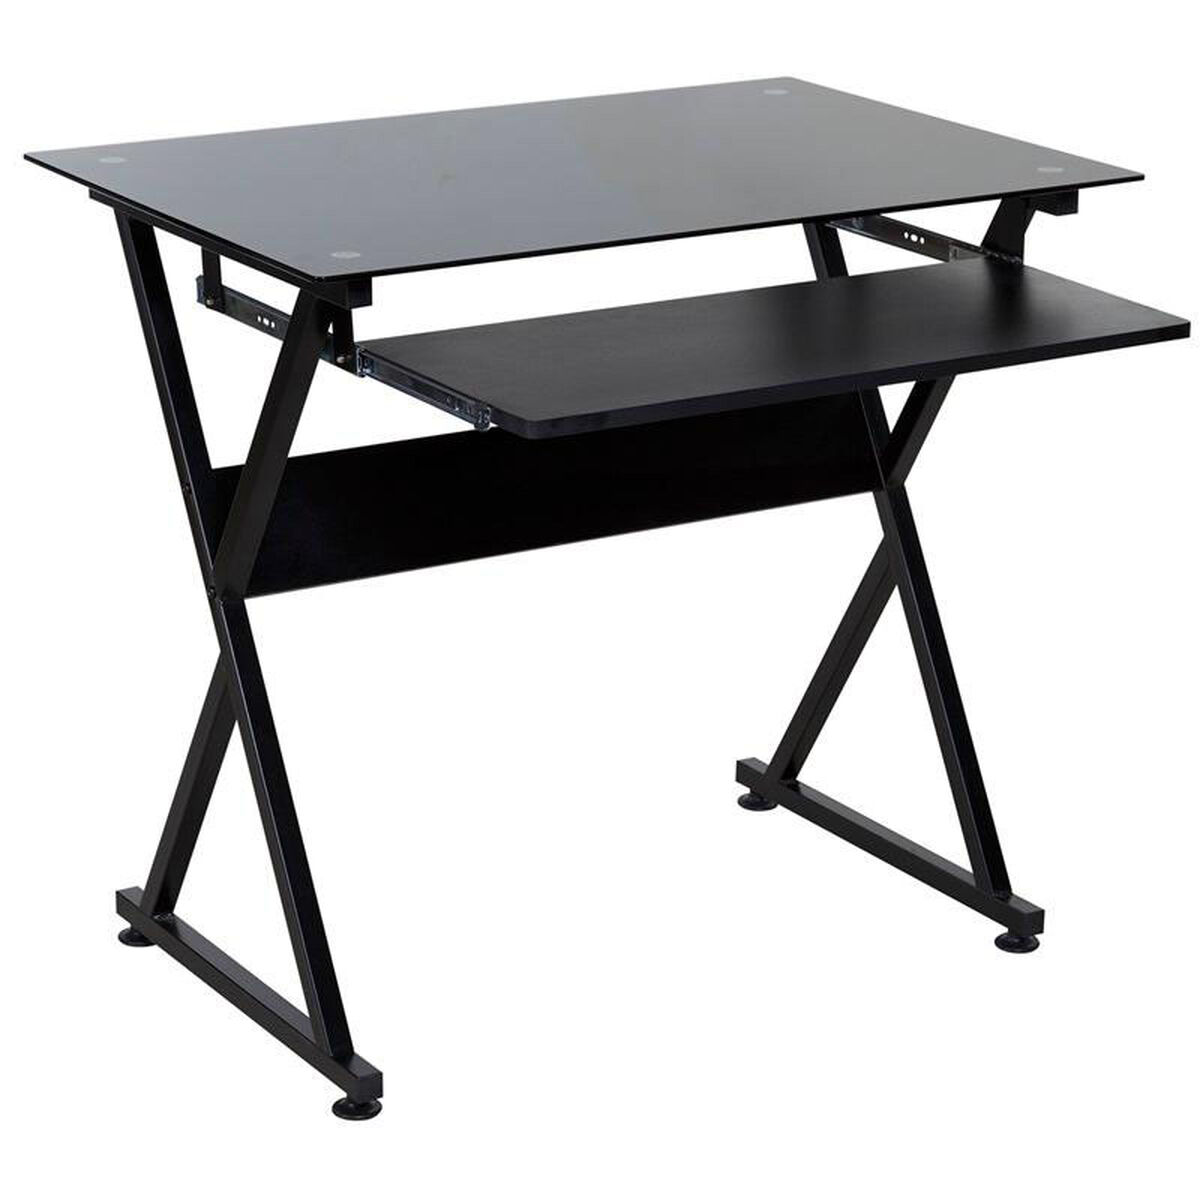 Our Onespace Ultramodern Glass Computer Desk Black Is On Now